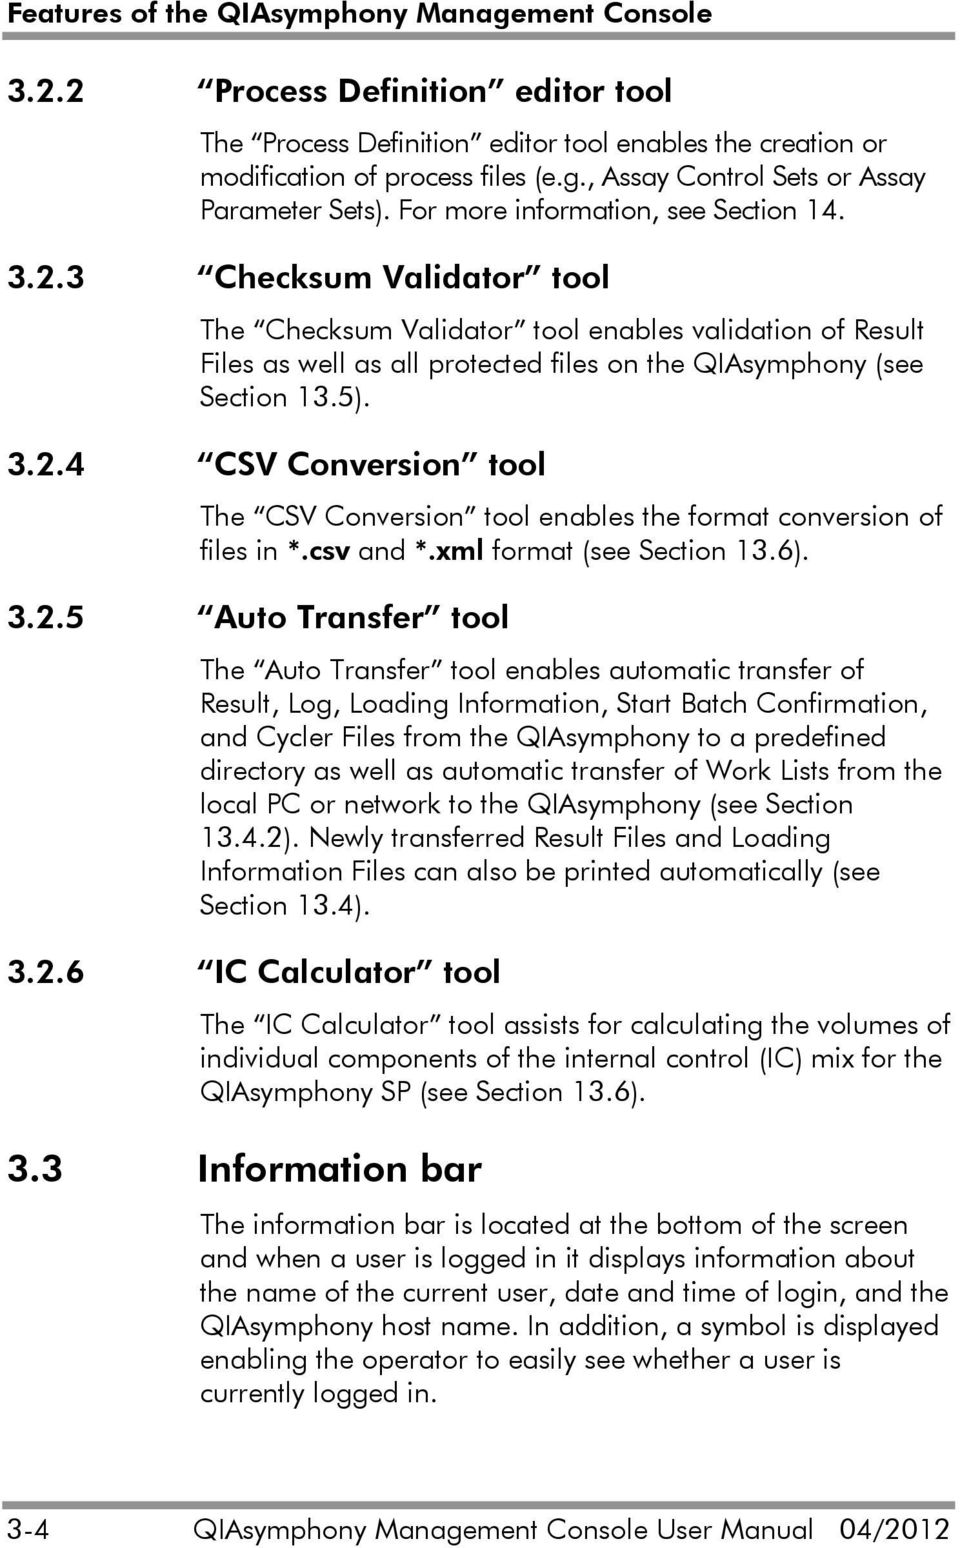 3.2.4 CSV Conversion tool The CSV Conversion tool enables the format conversion of files in *.csv and *.xml format (see Section 13.6). 3.2.5 Auto Transfer tool The Auto Transfer tool enables